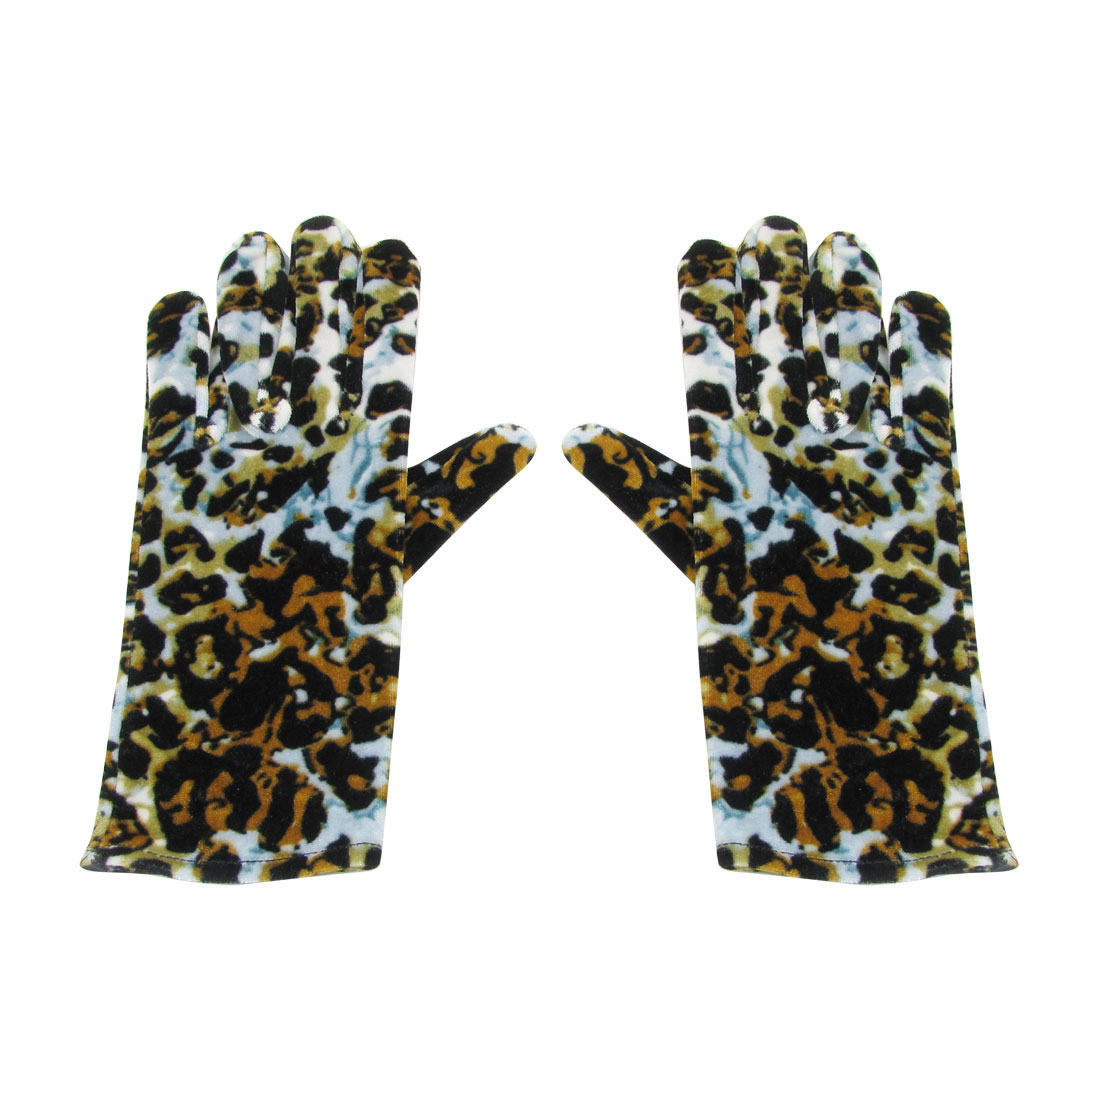 Lady Pair Leopard Print Full Fingers Hand Wearing Warm Gloves Colorful